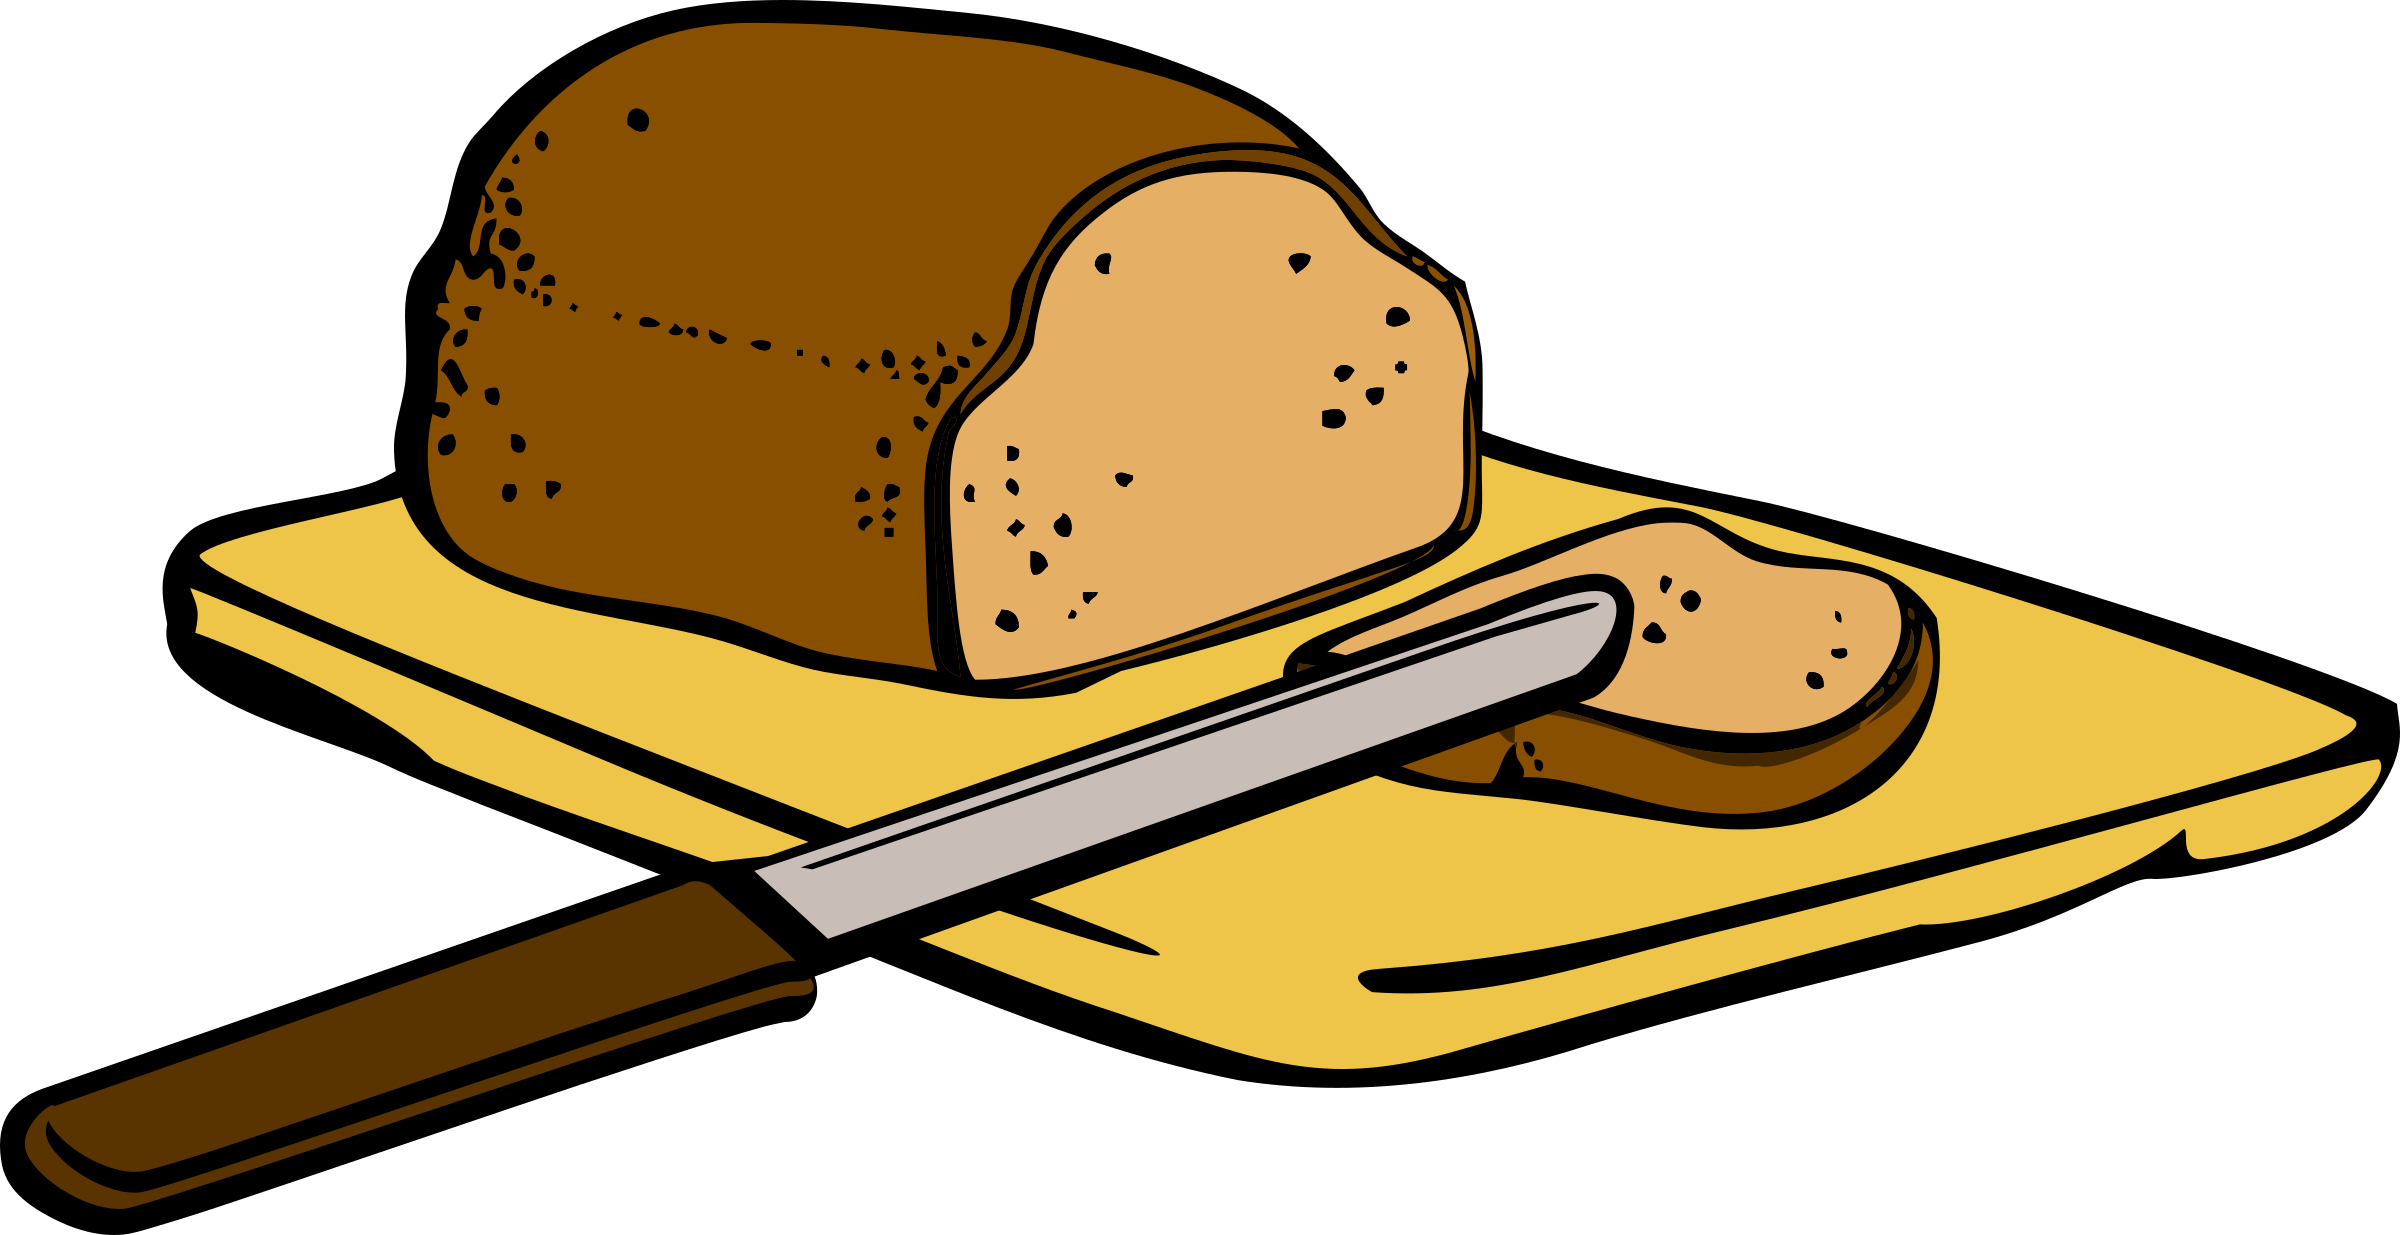 Knife clipart food. Pencil and in color